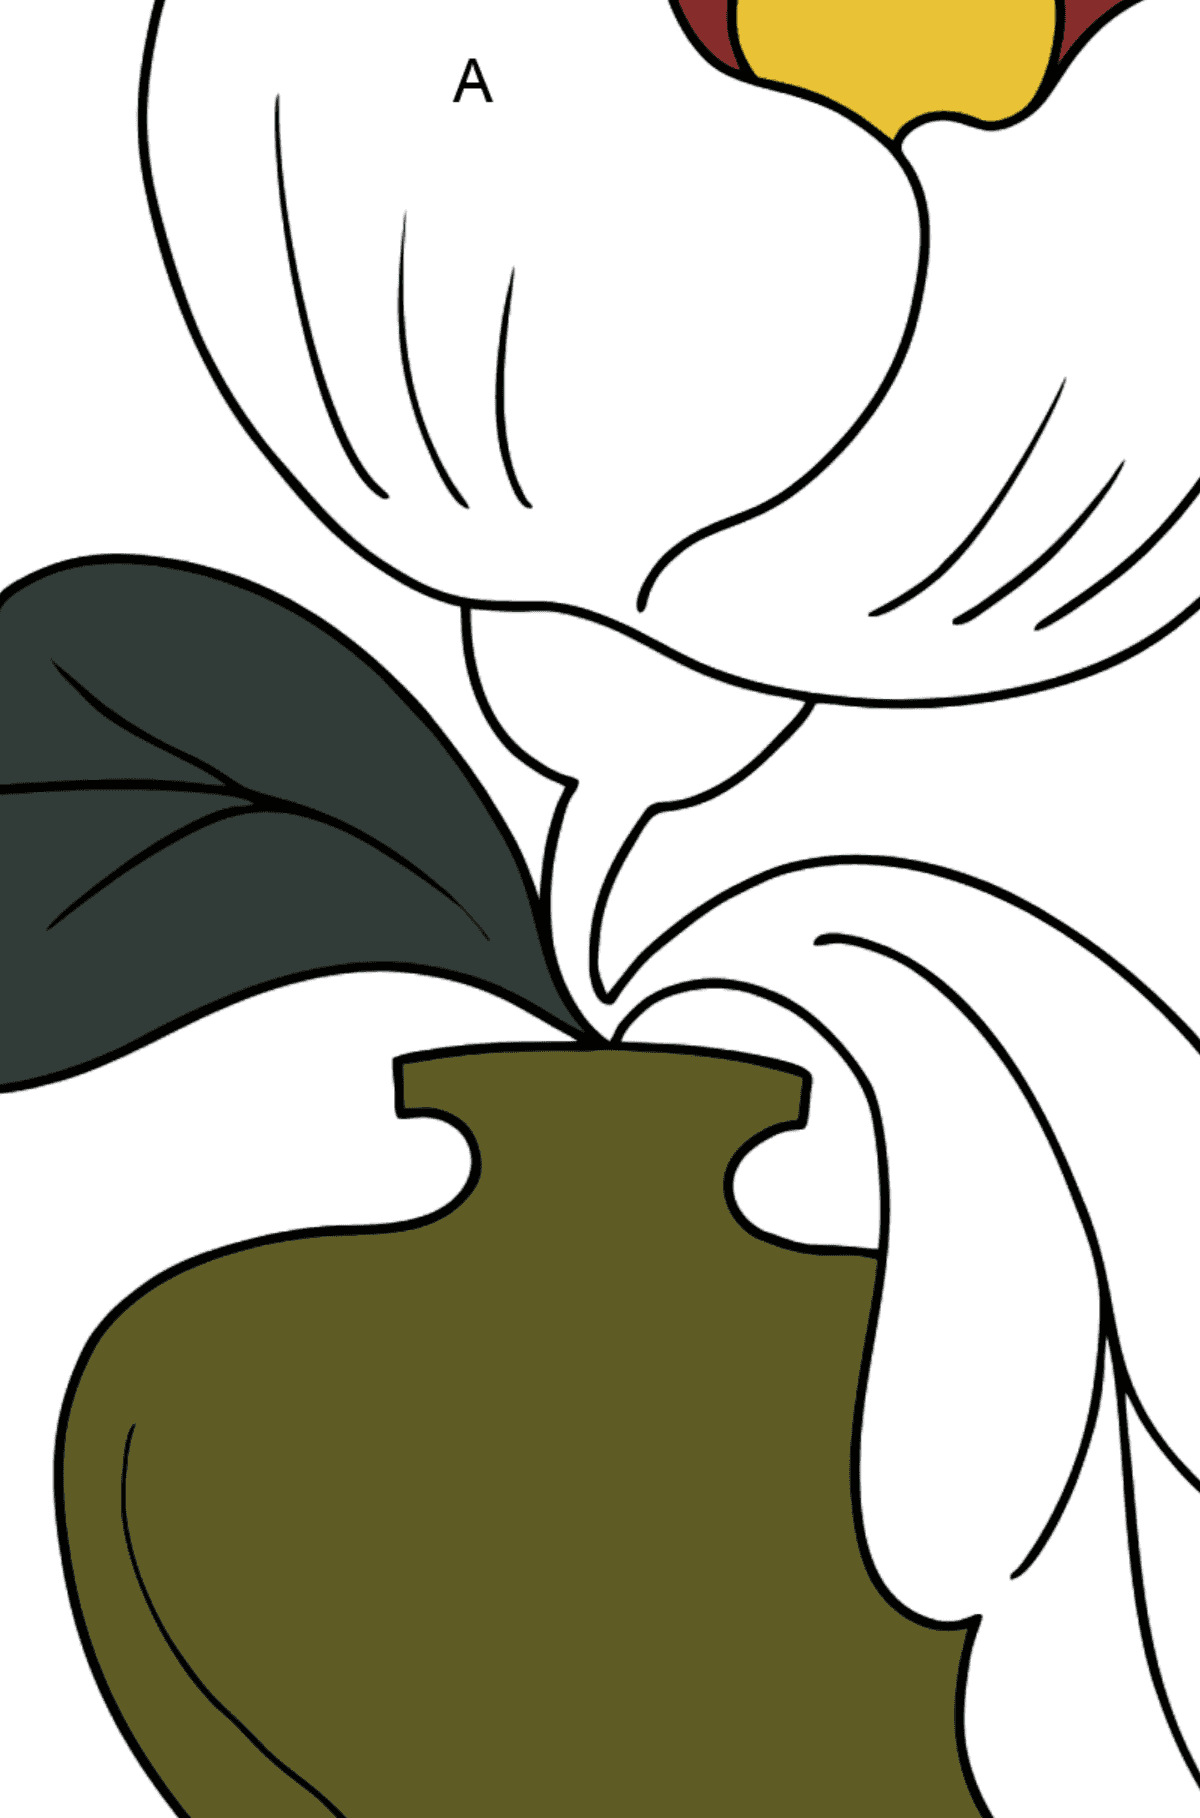 Coloring Page - flowers in a vase - Coloring by Letters for Kids